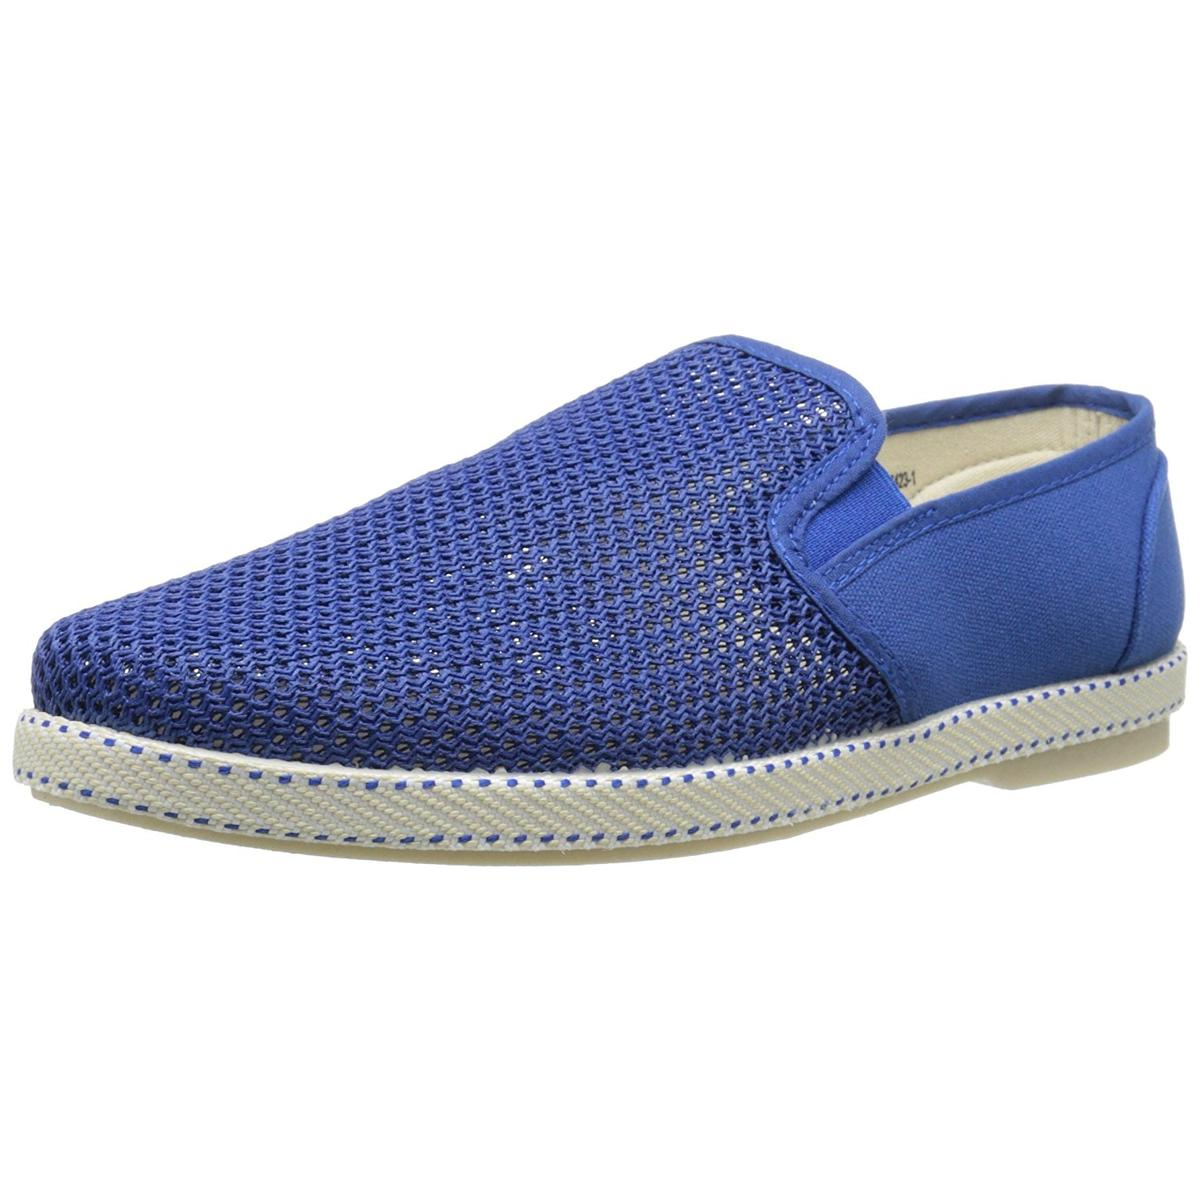 GBX Delt Men's Royal Blue Slip On Loafer by GBX